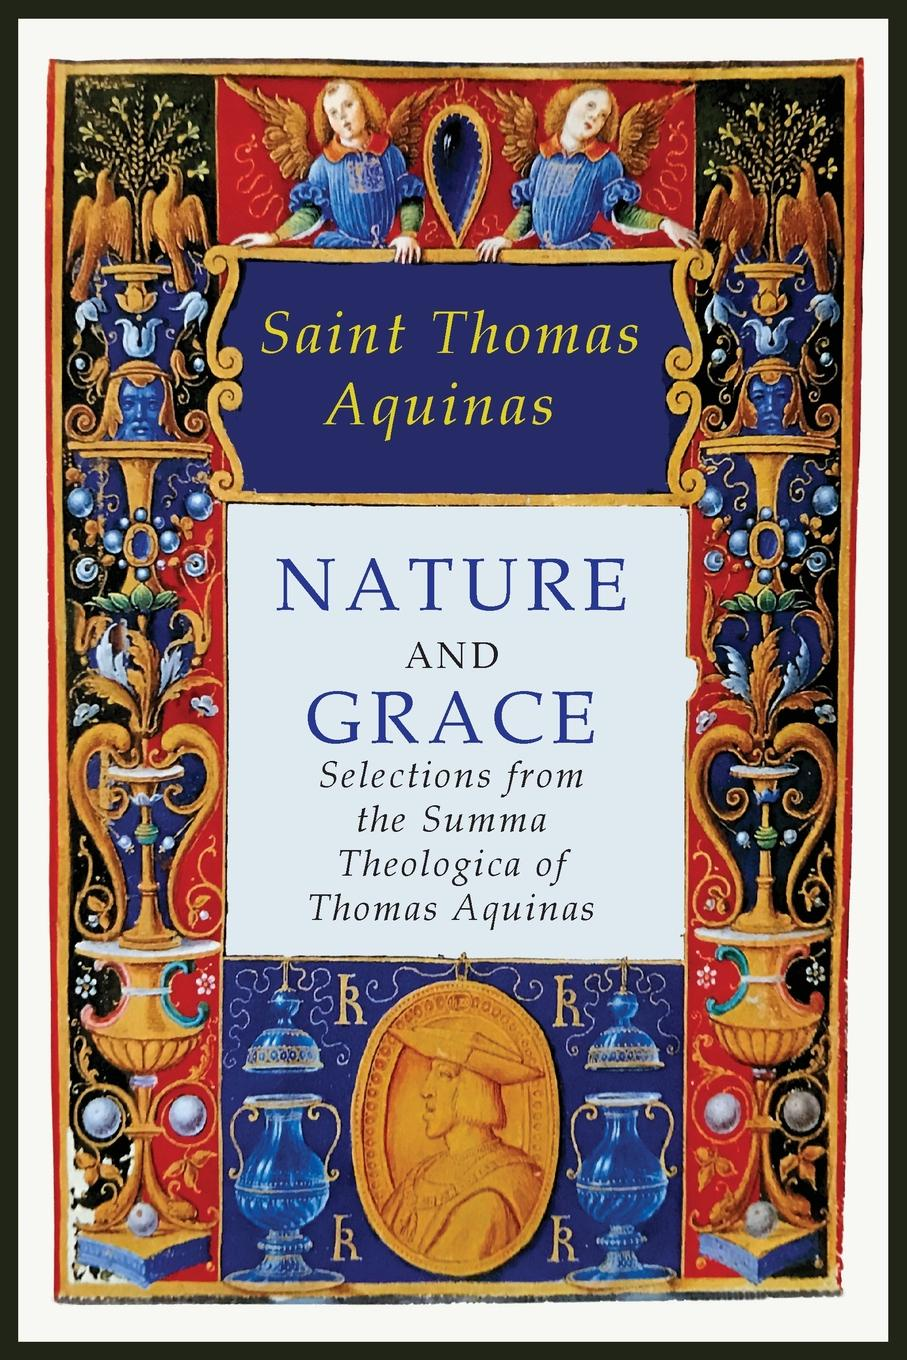 Saint Thomas Aquinas, A. M. Fairweather Nature and Grace. Selections from the Summa Theologica of Thomas Aquinas aquinas thomas ninety nine homilies of s thomas aquinas upon the epistles and gospels foforty nine sundays of the christian year